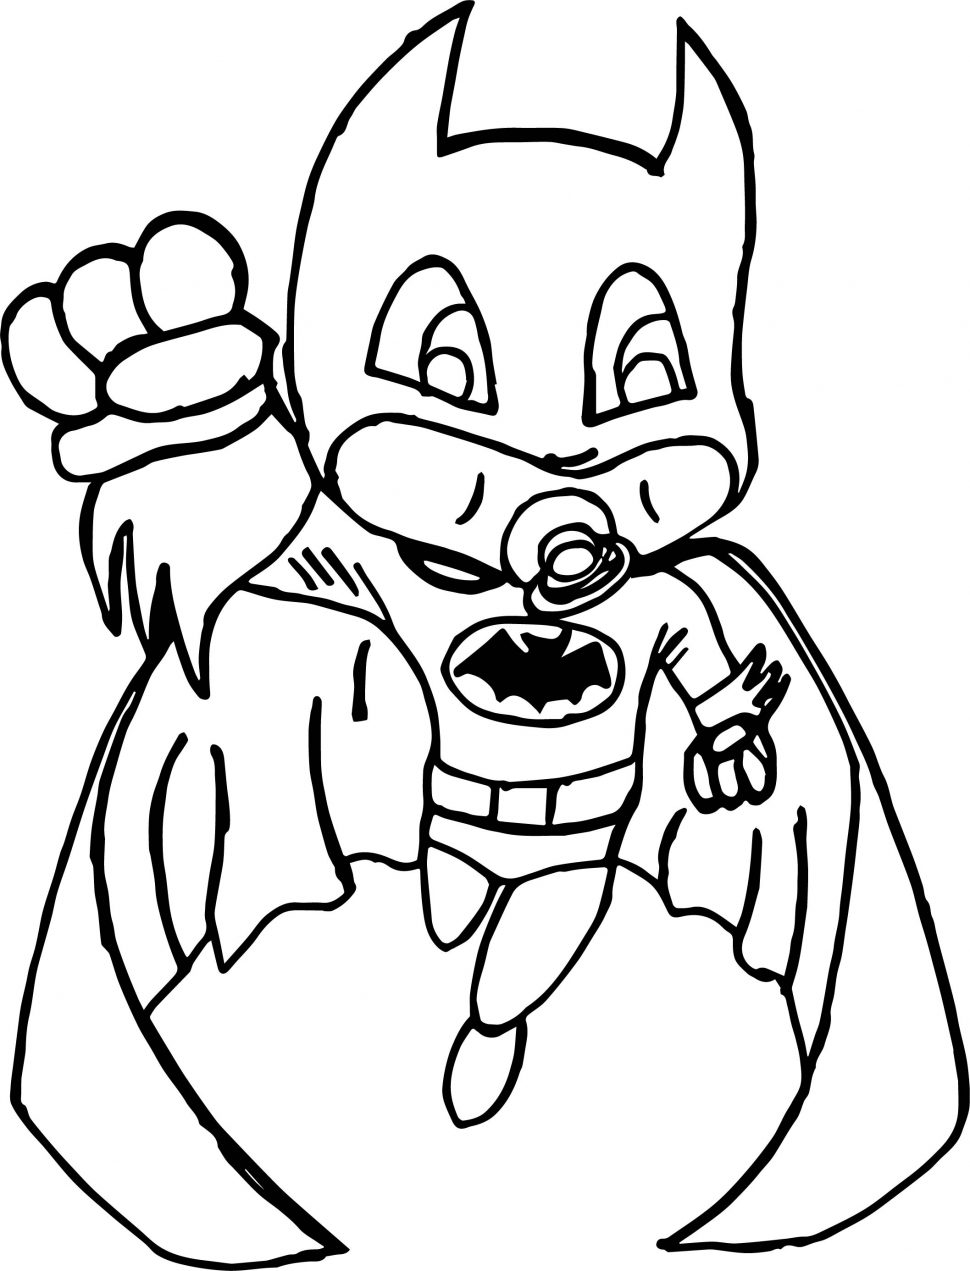 Batman Coloring Pages Free download